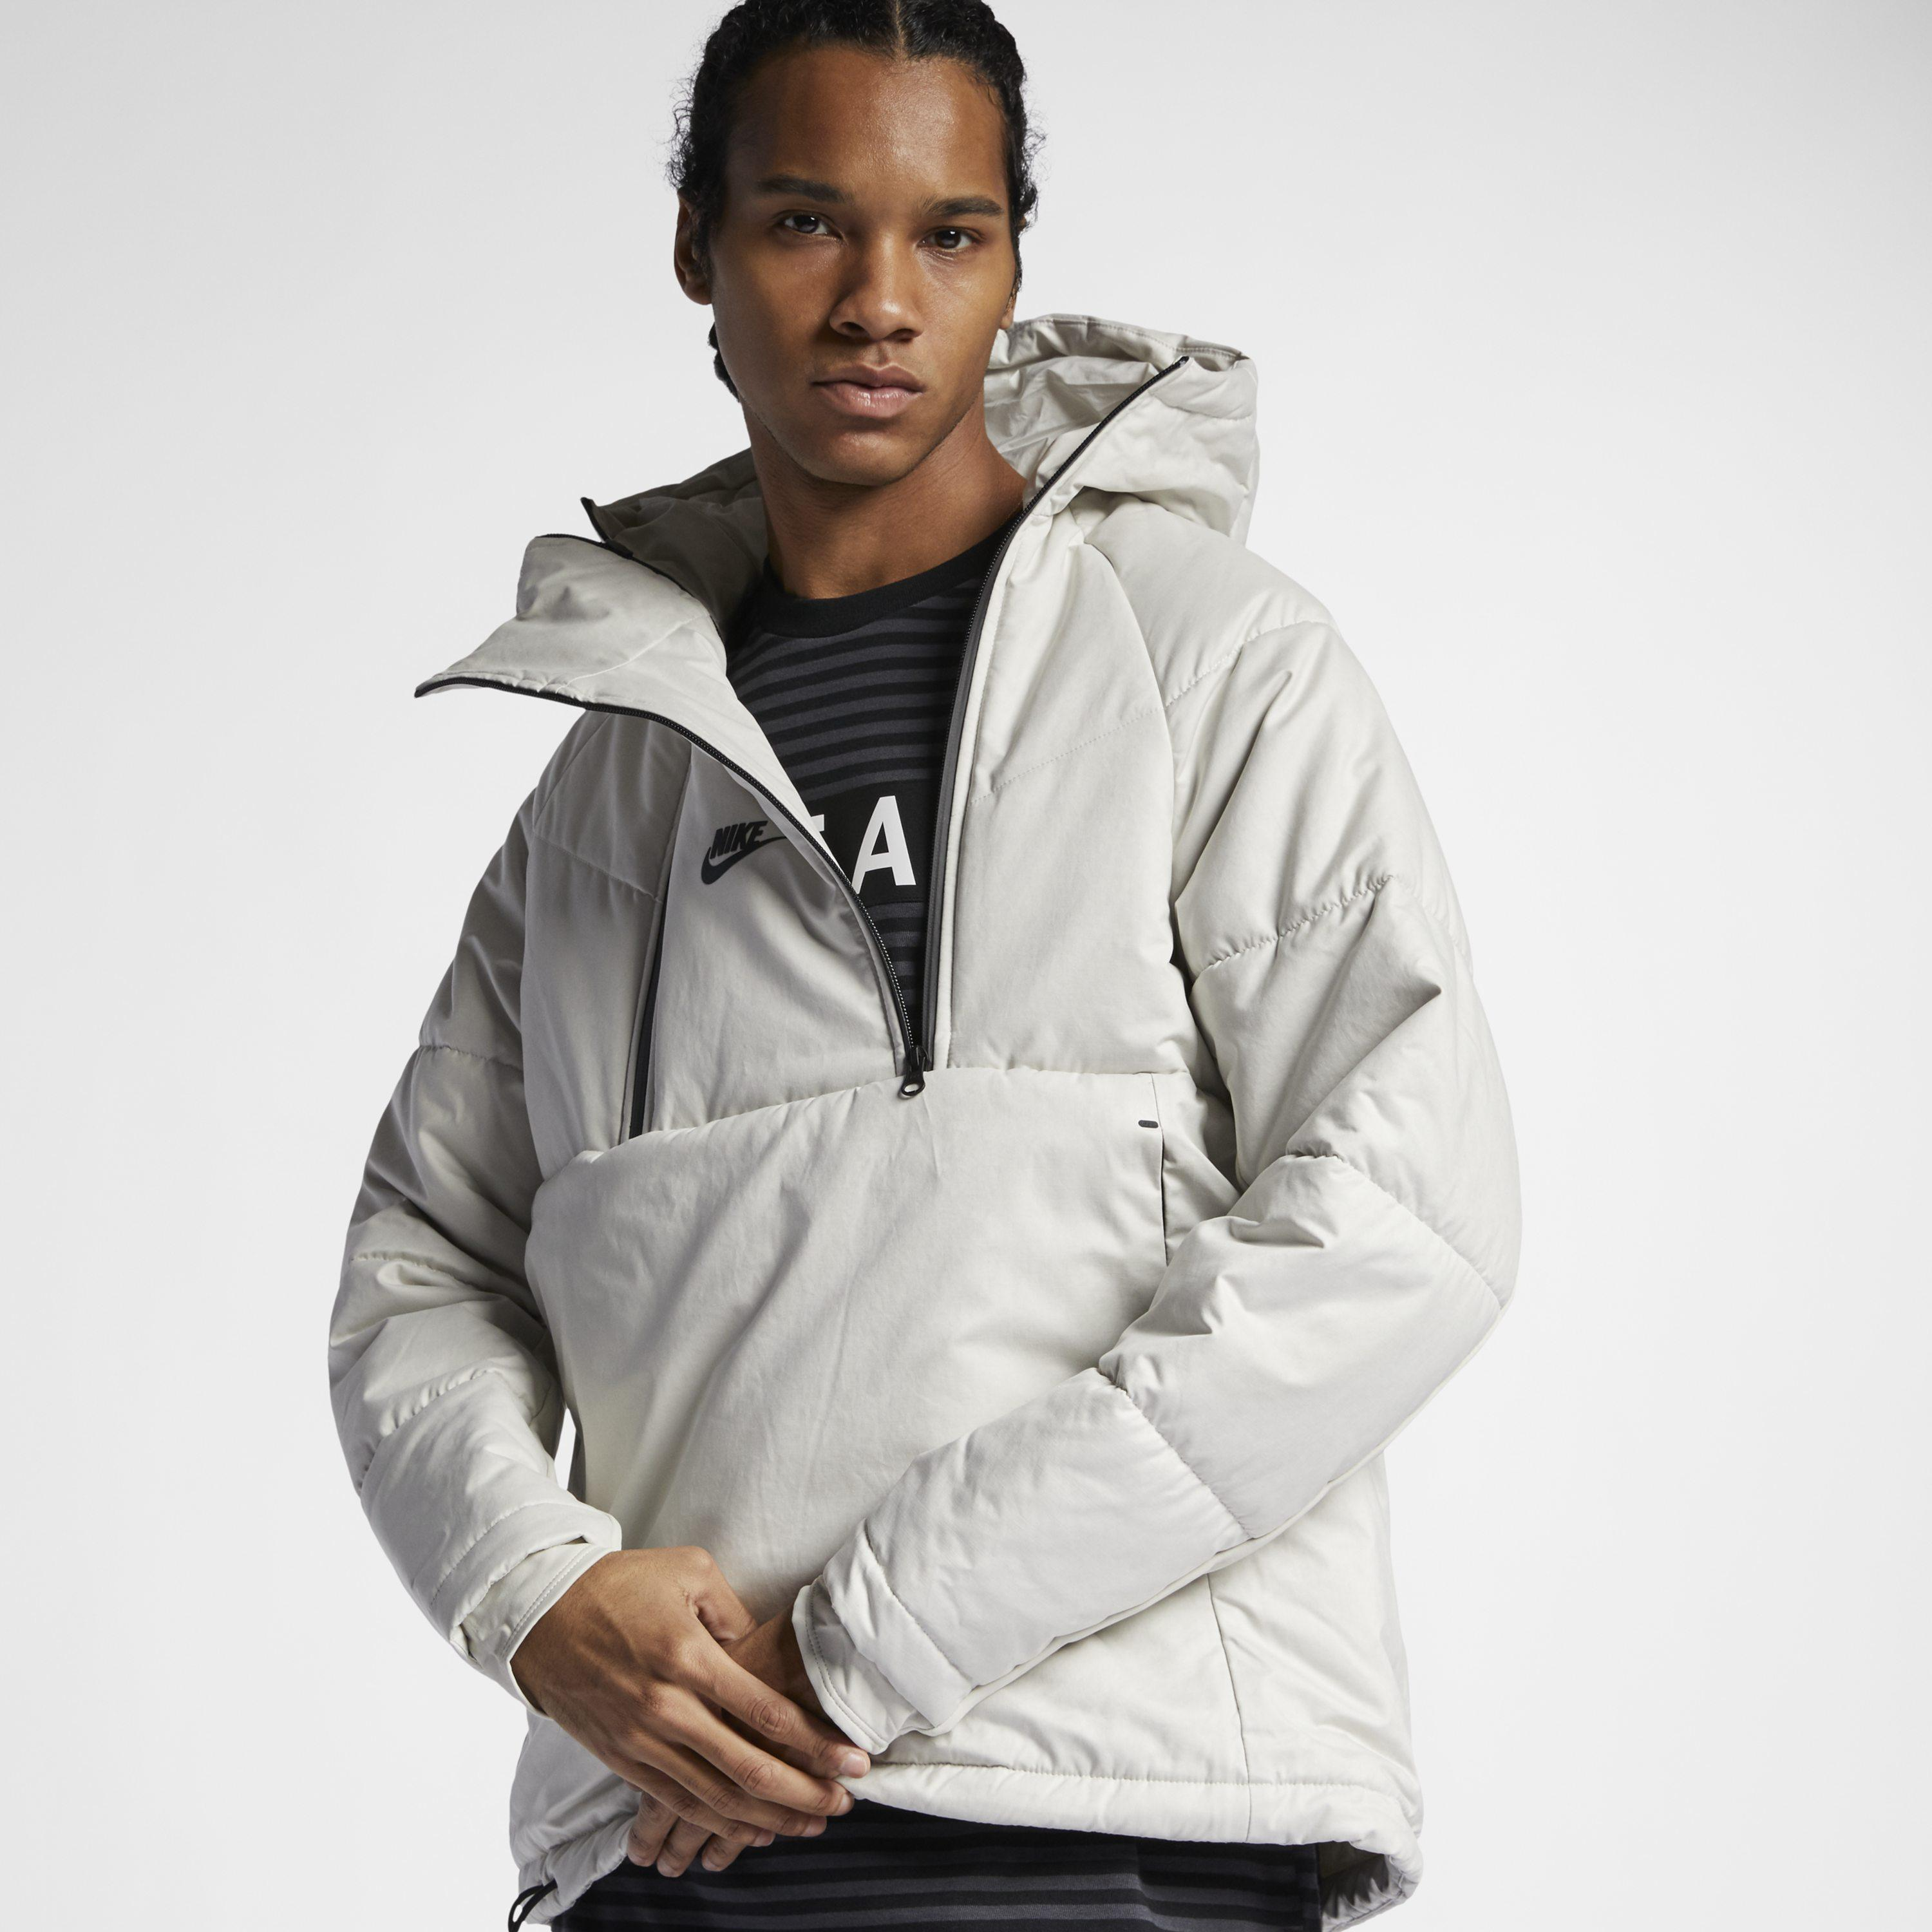 e31ff5161 ... Tech Pack Synthetic Fill Jacket for Men - Lyst. Visit Nike. Tap to  visit site